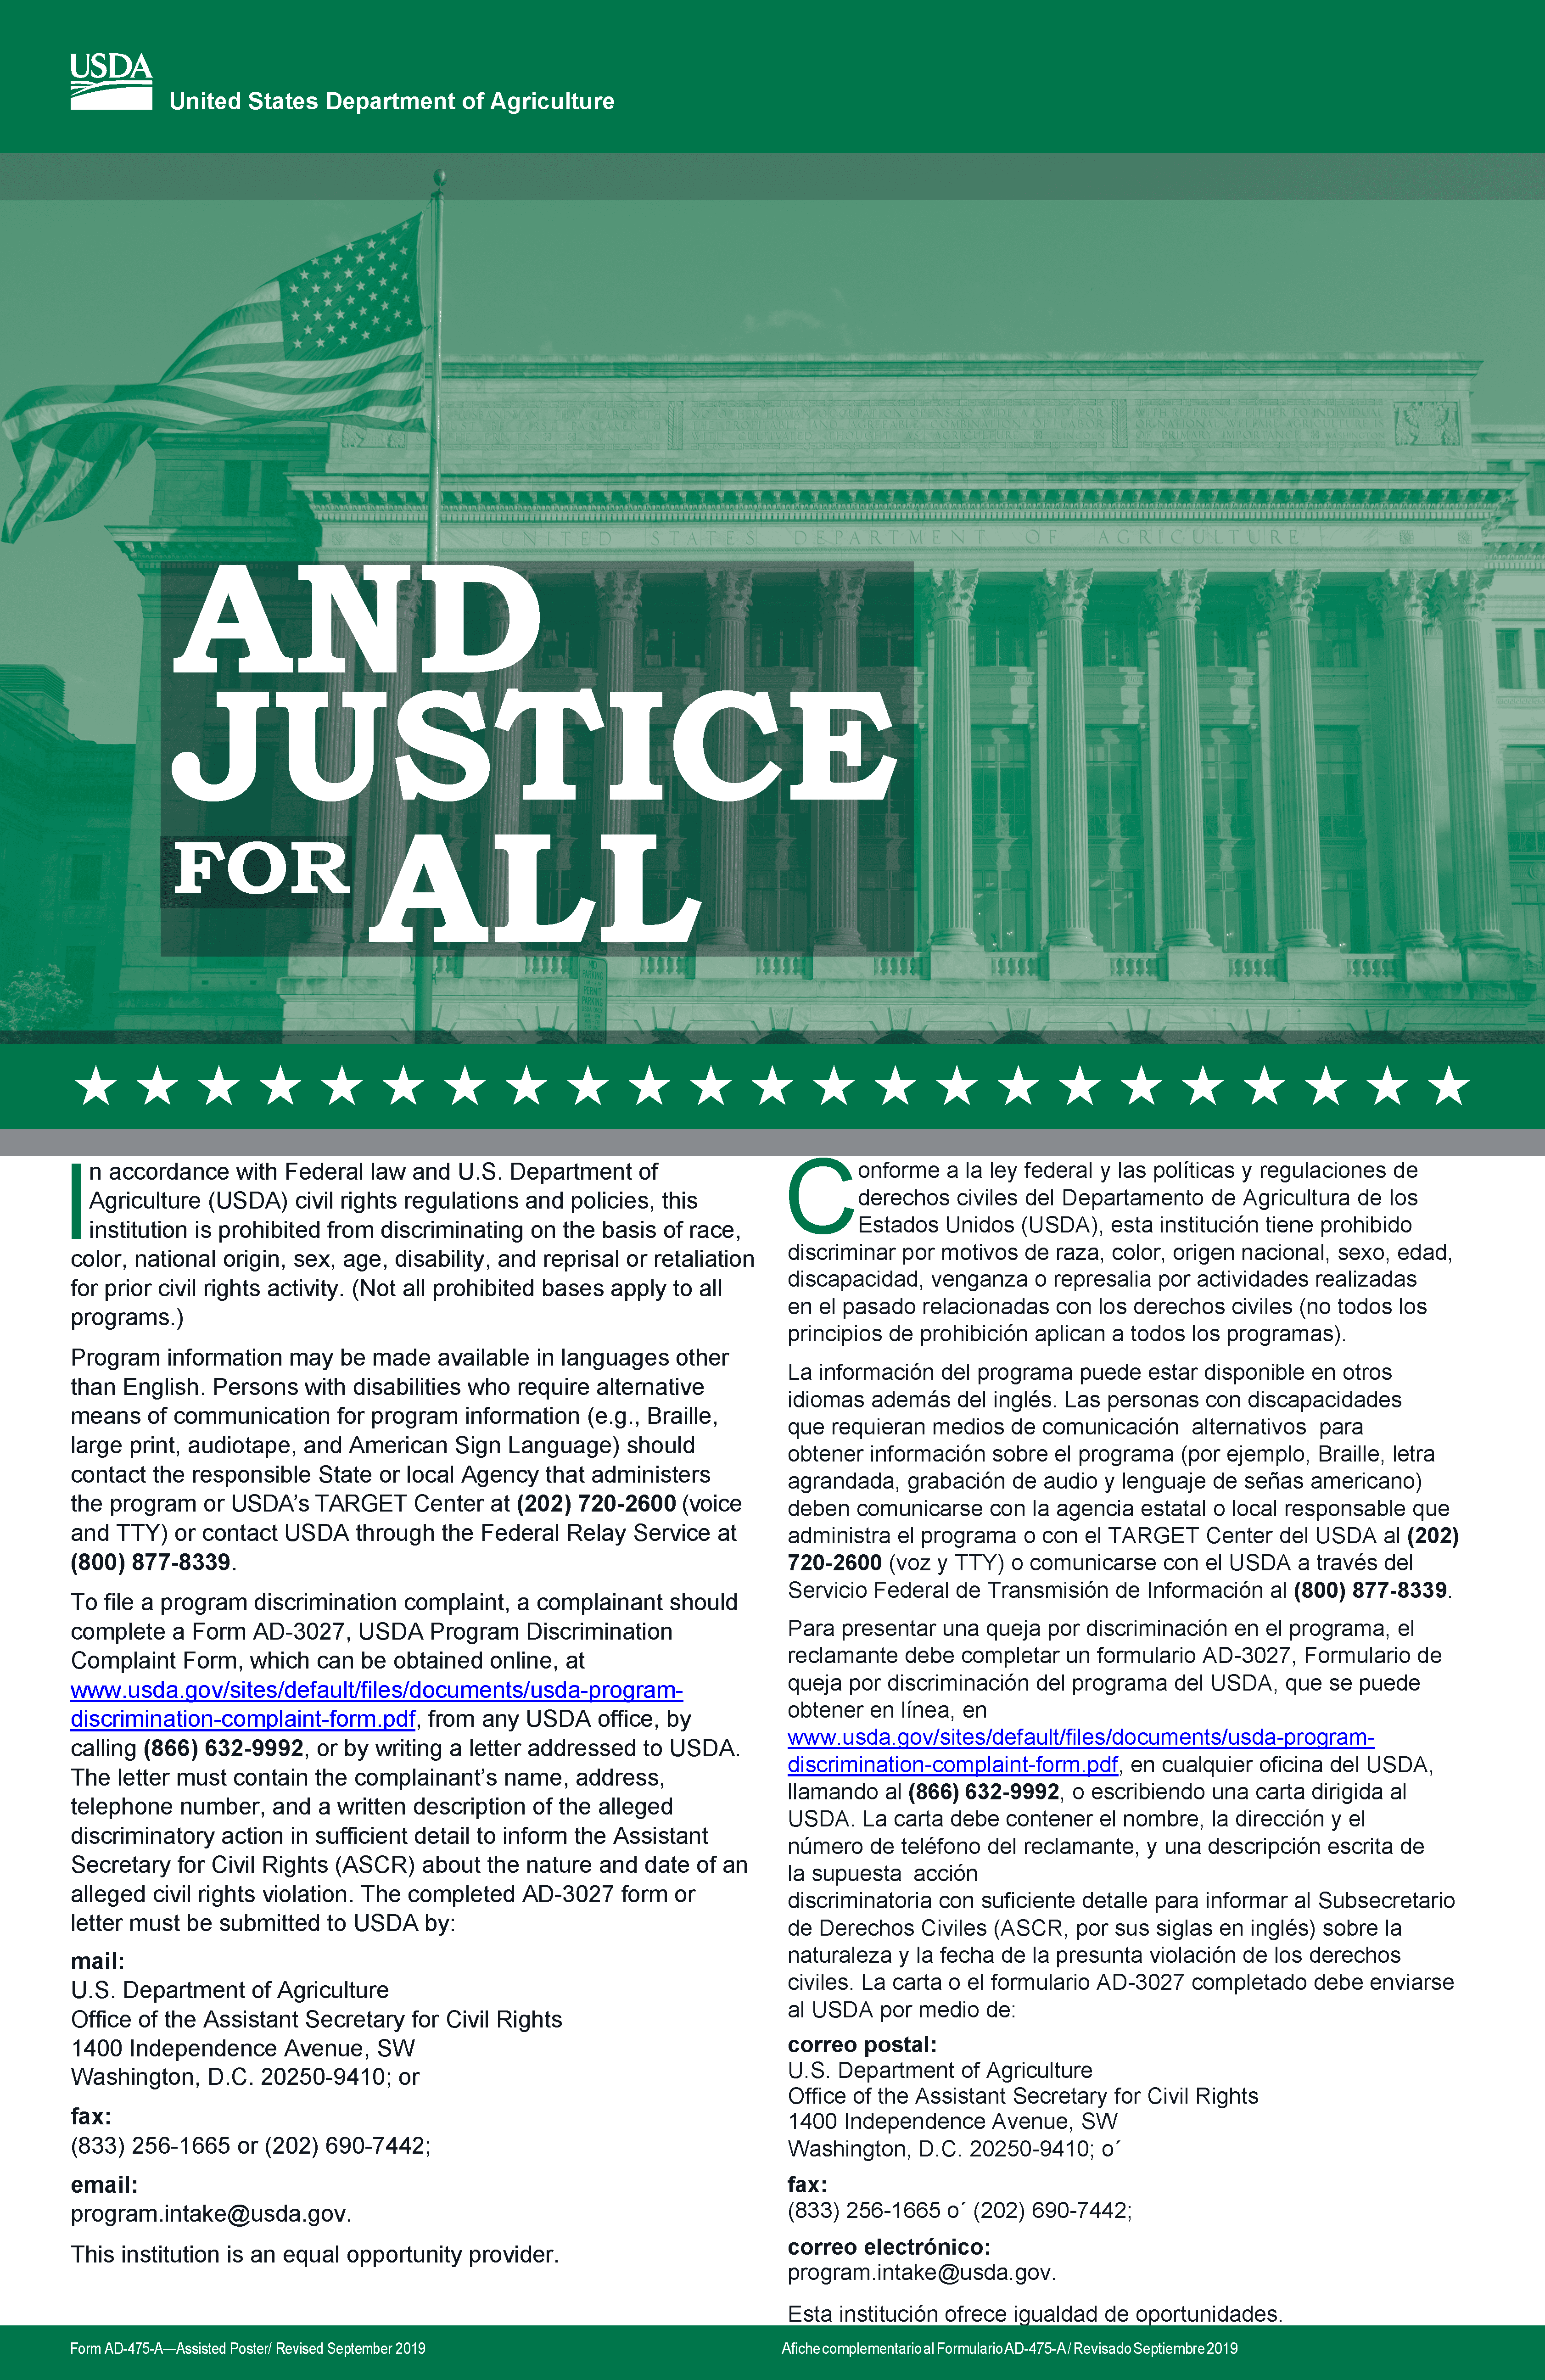 And Justice for All flyer